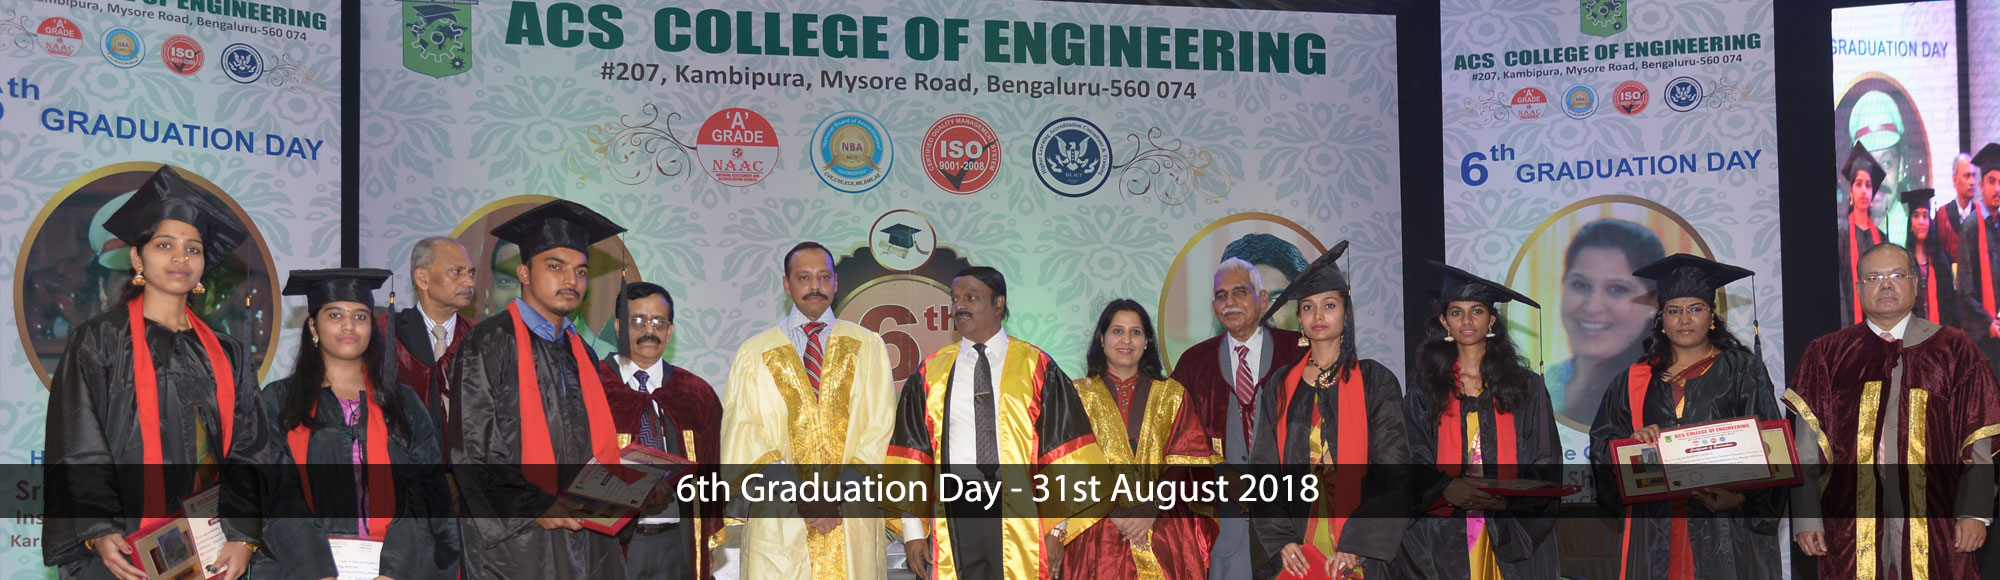 6th-Graduation-Day-31st-August-2018-3